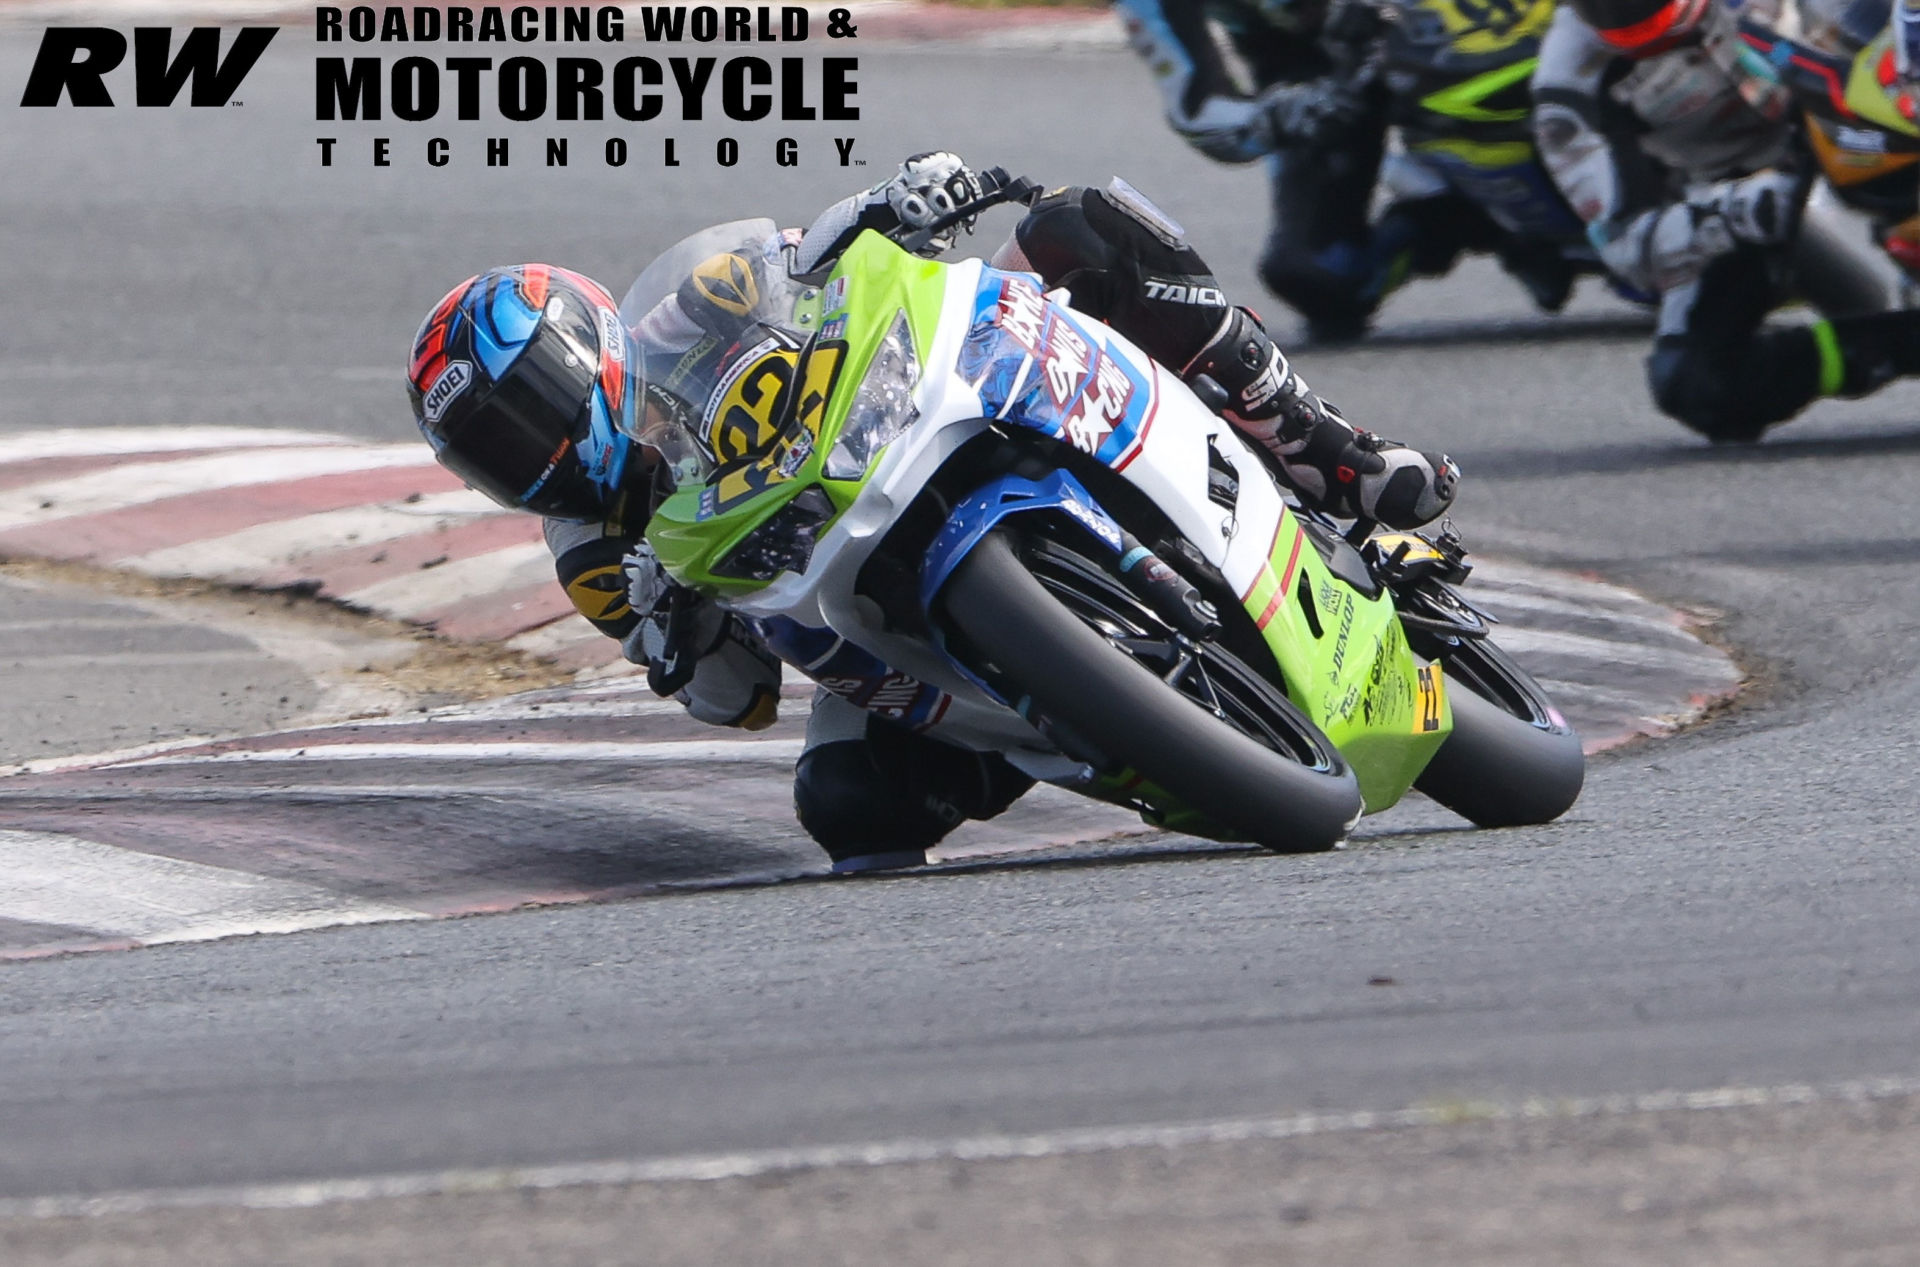 Blake Davis (22) in action during a MotoAmerica Junior Cup race in 2020. Photo by Brian J. Nelson.